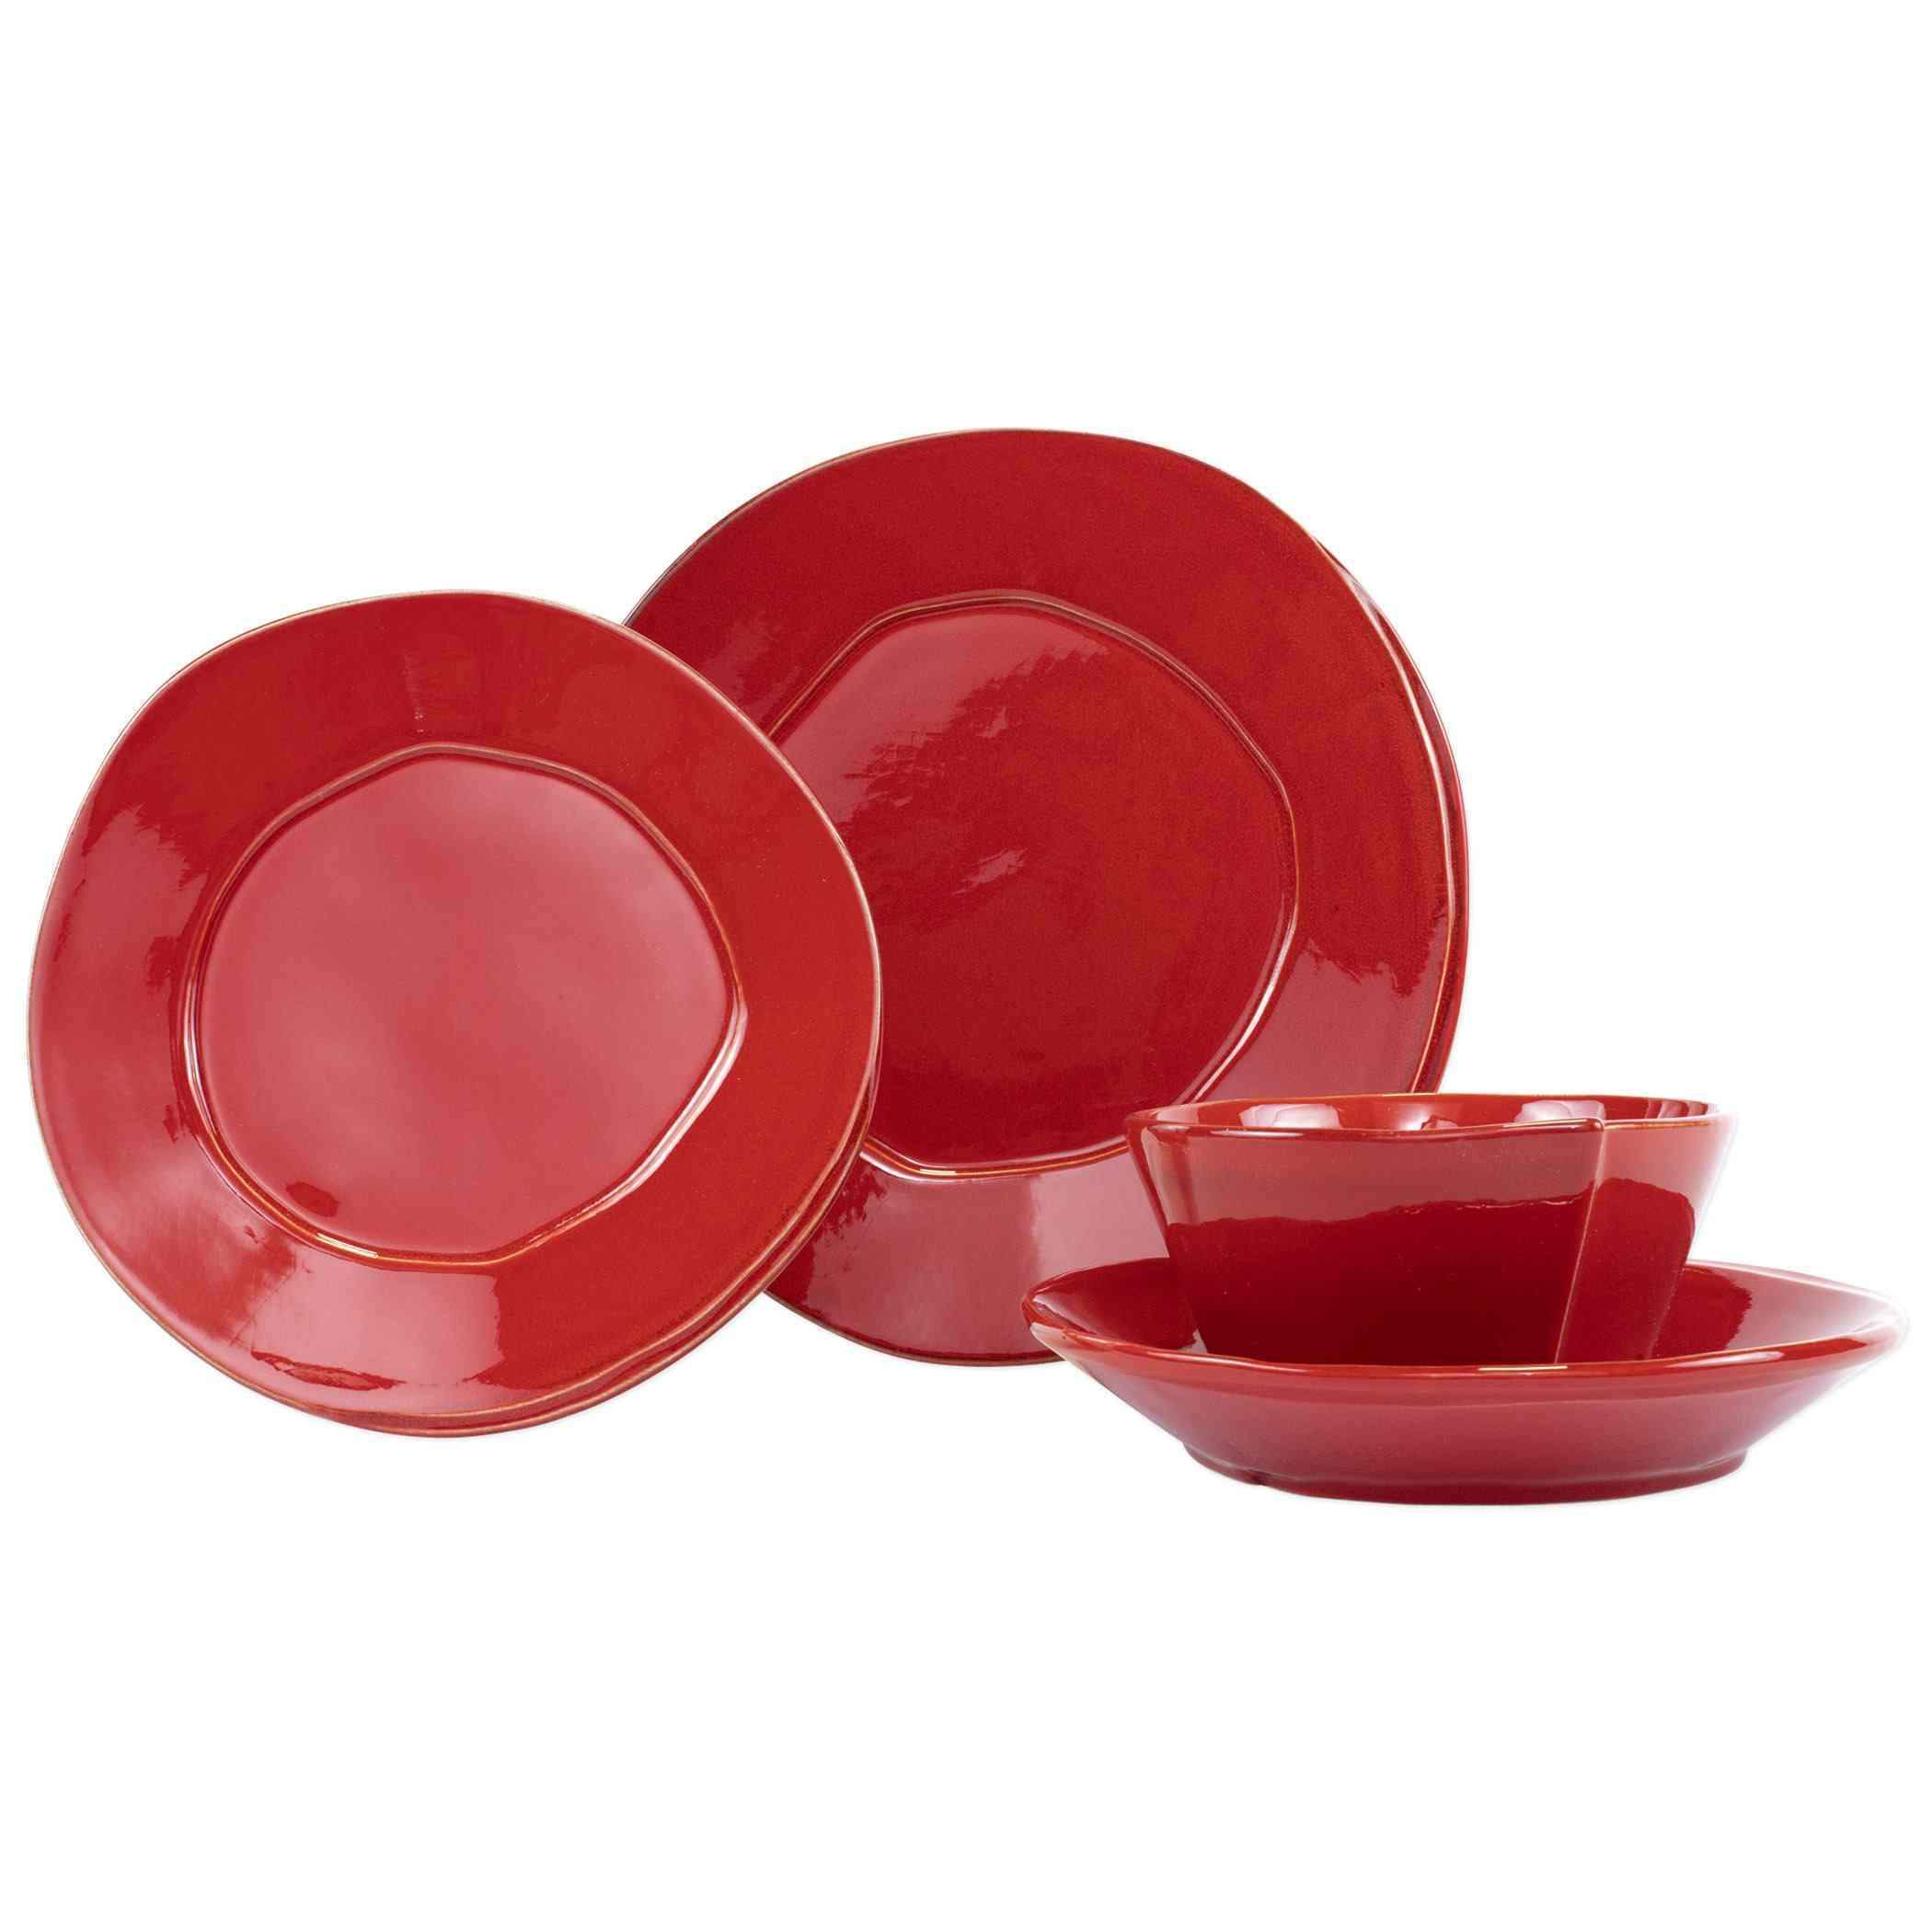 Vietri Lastra Four-Piece Place Setting - Available in 6 Colors - Red